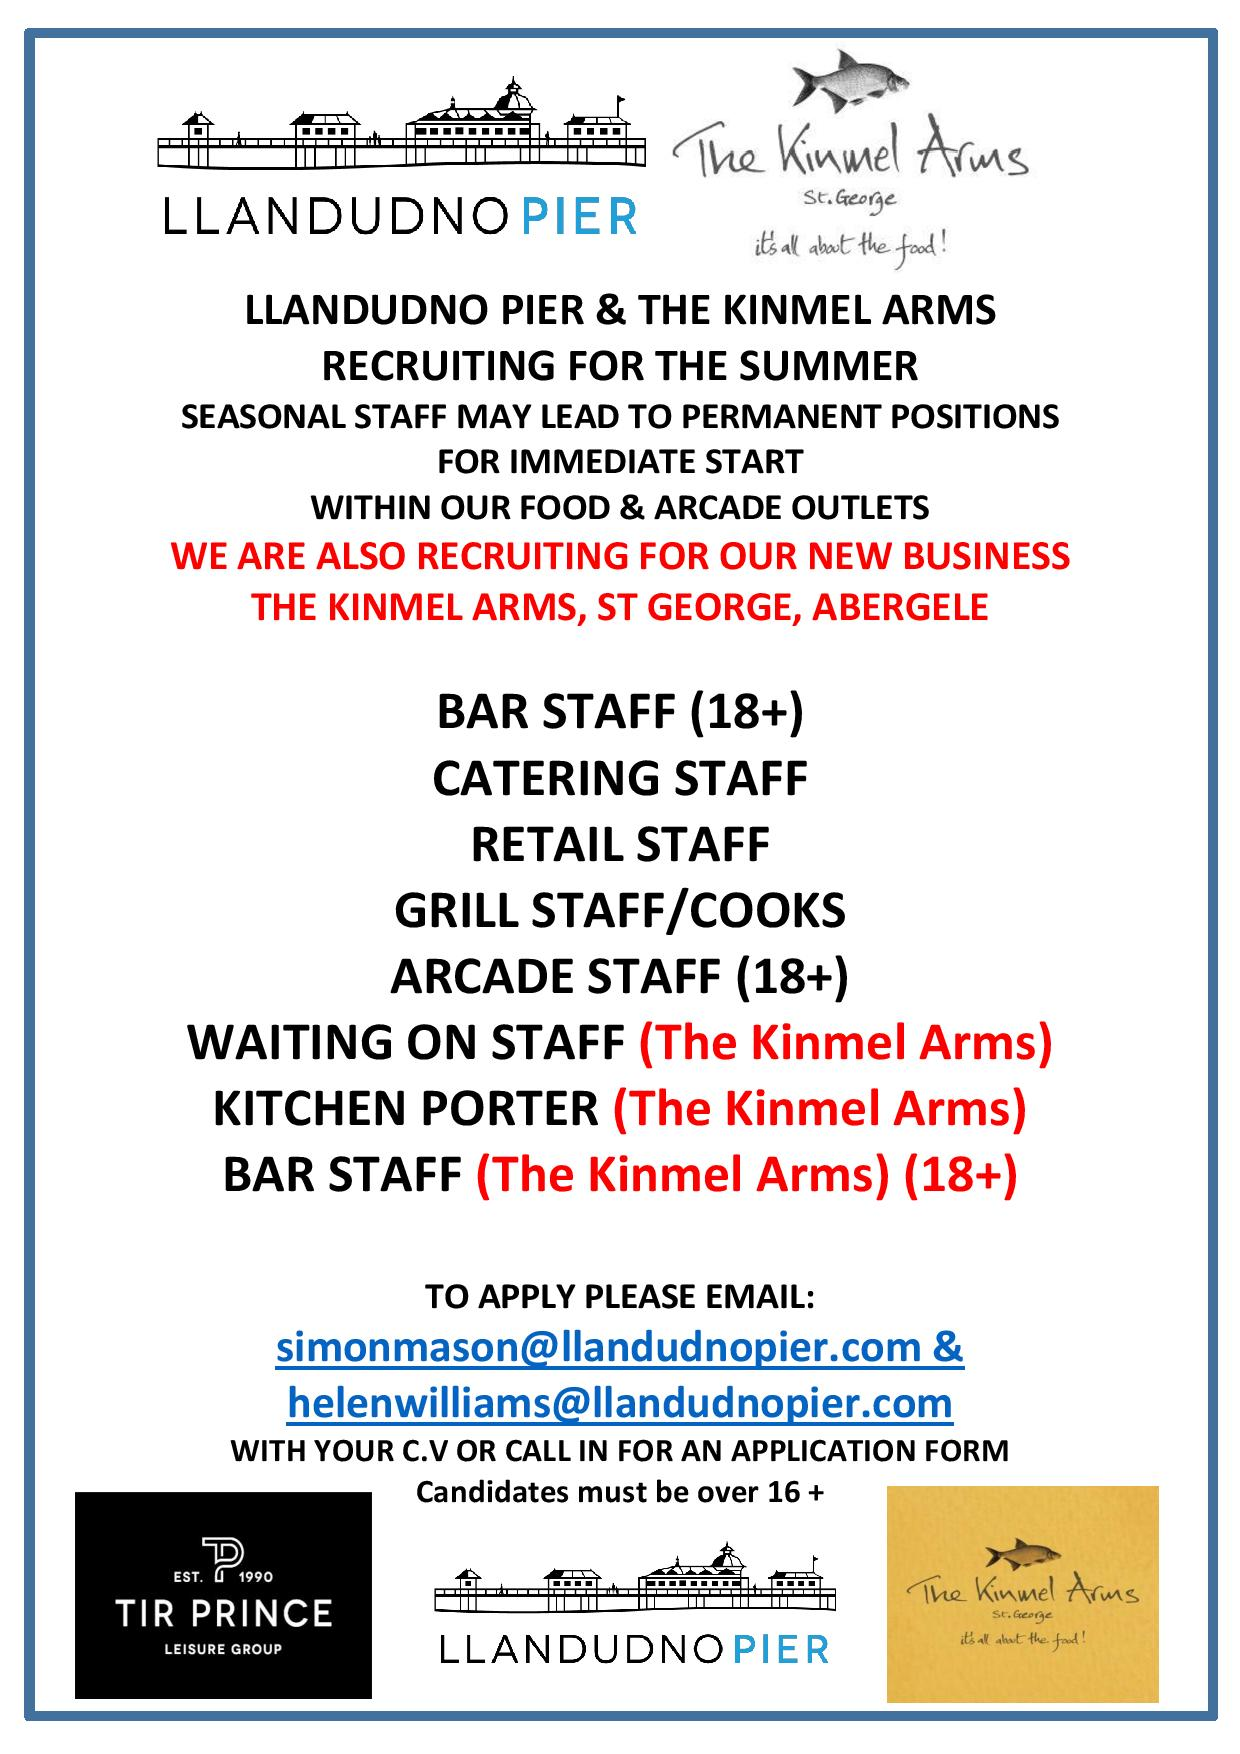 LLANDUDNO PIER & KINMEL ARMS JOB ADVERT